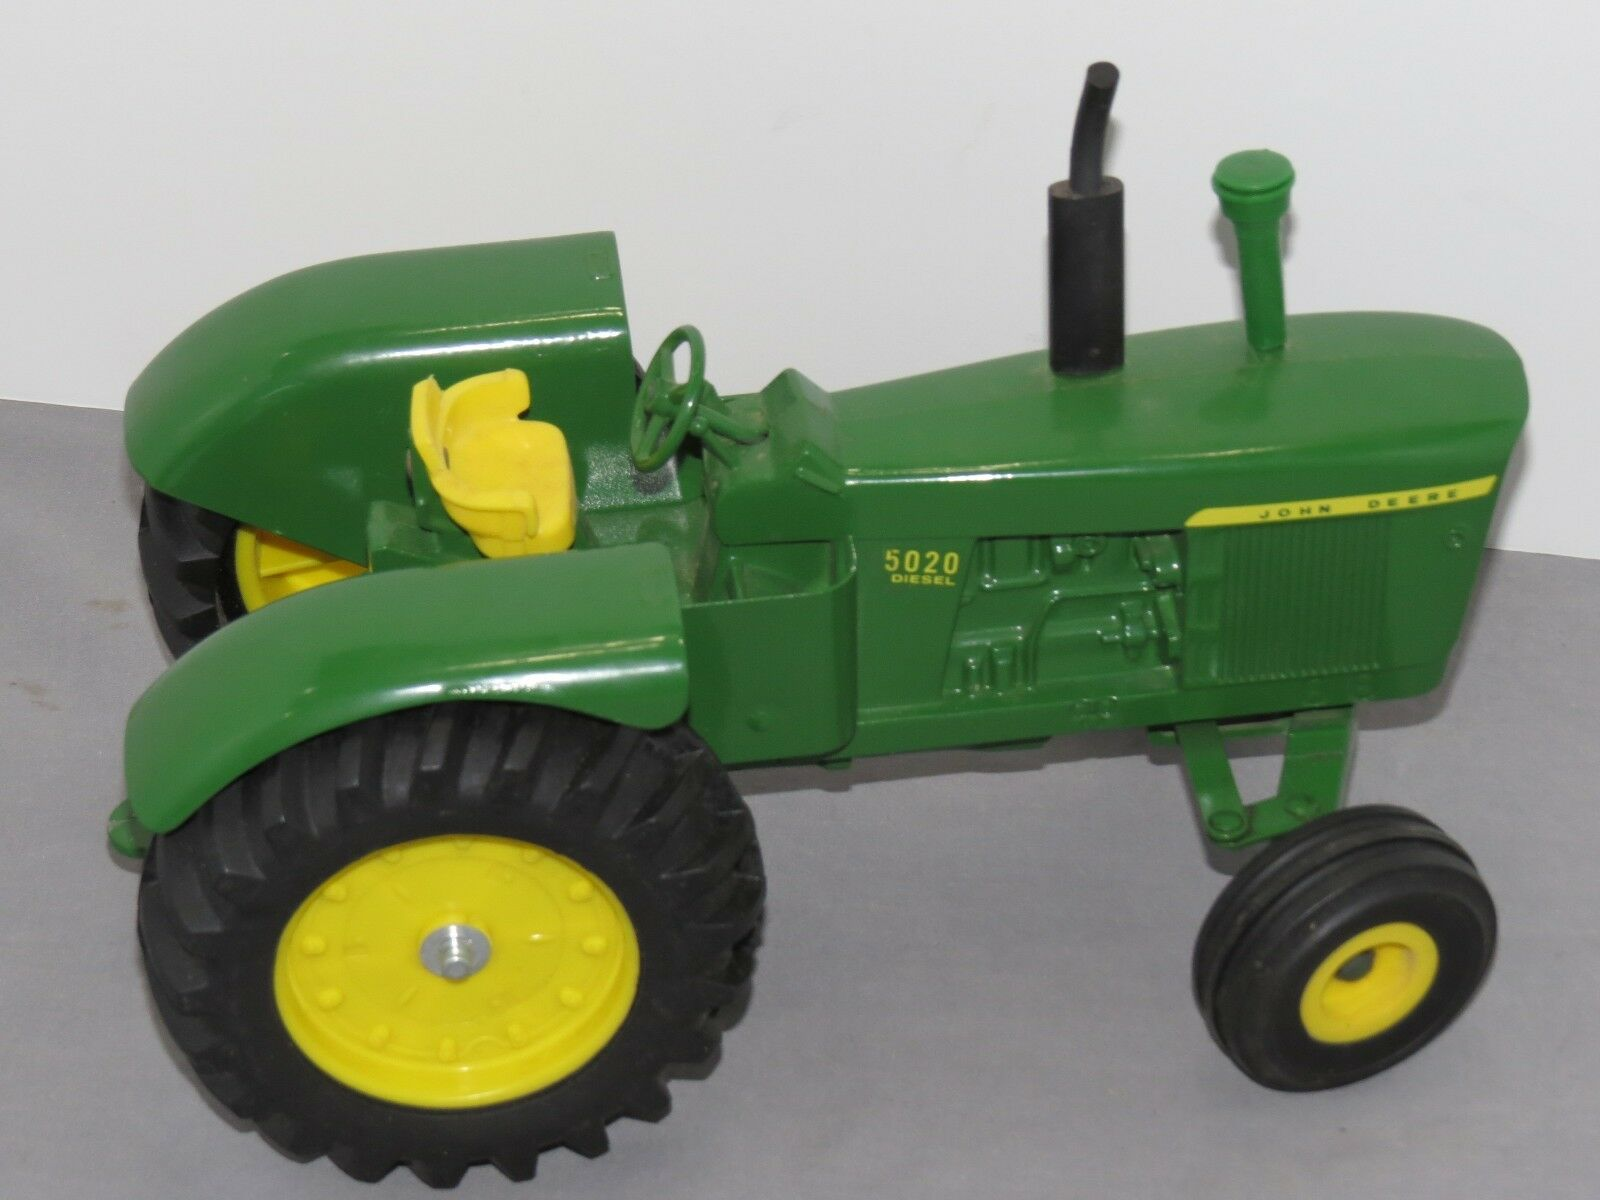 Vintage John Deere 5020 Toy Tractor 1 16 scale with Air Cleaner rare